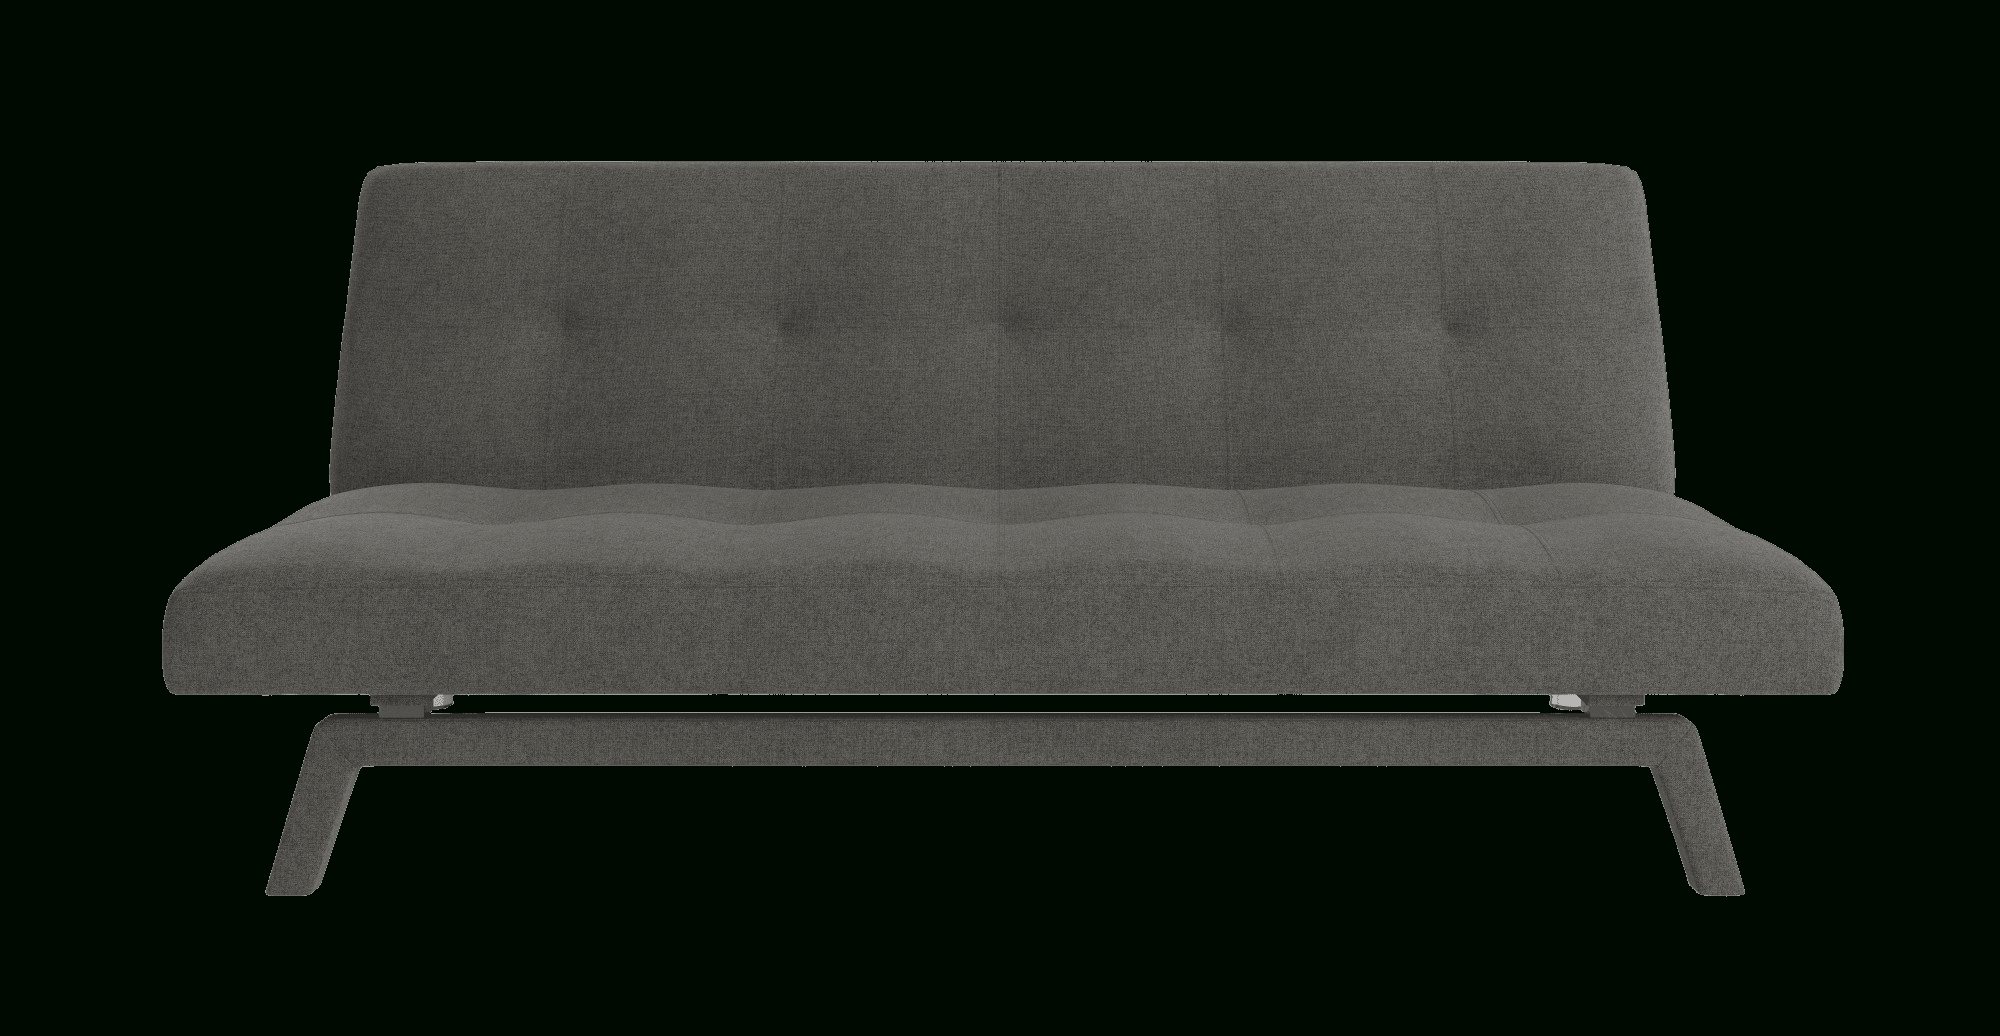 Buy Milo Sofa Bed Online In Australia | Brosa Pertaining To Milo Sofa Chairs (View 22 of 25)